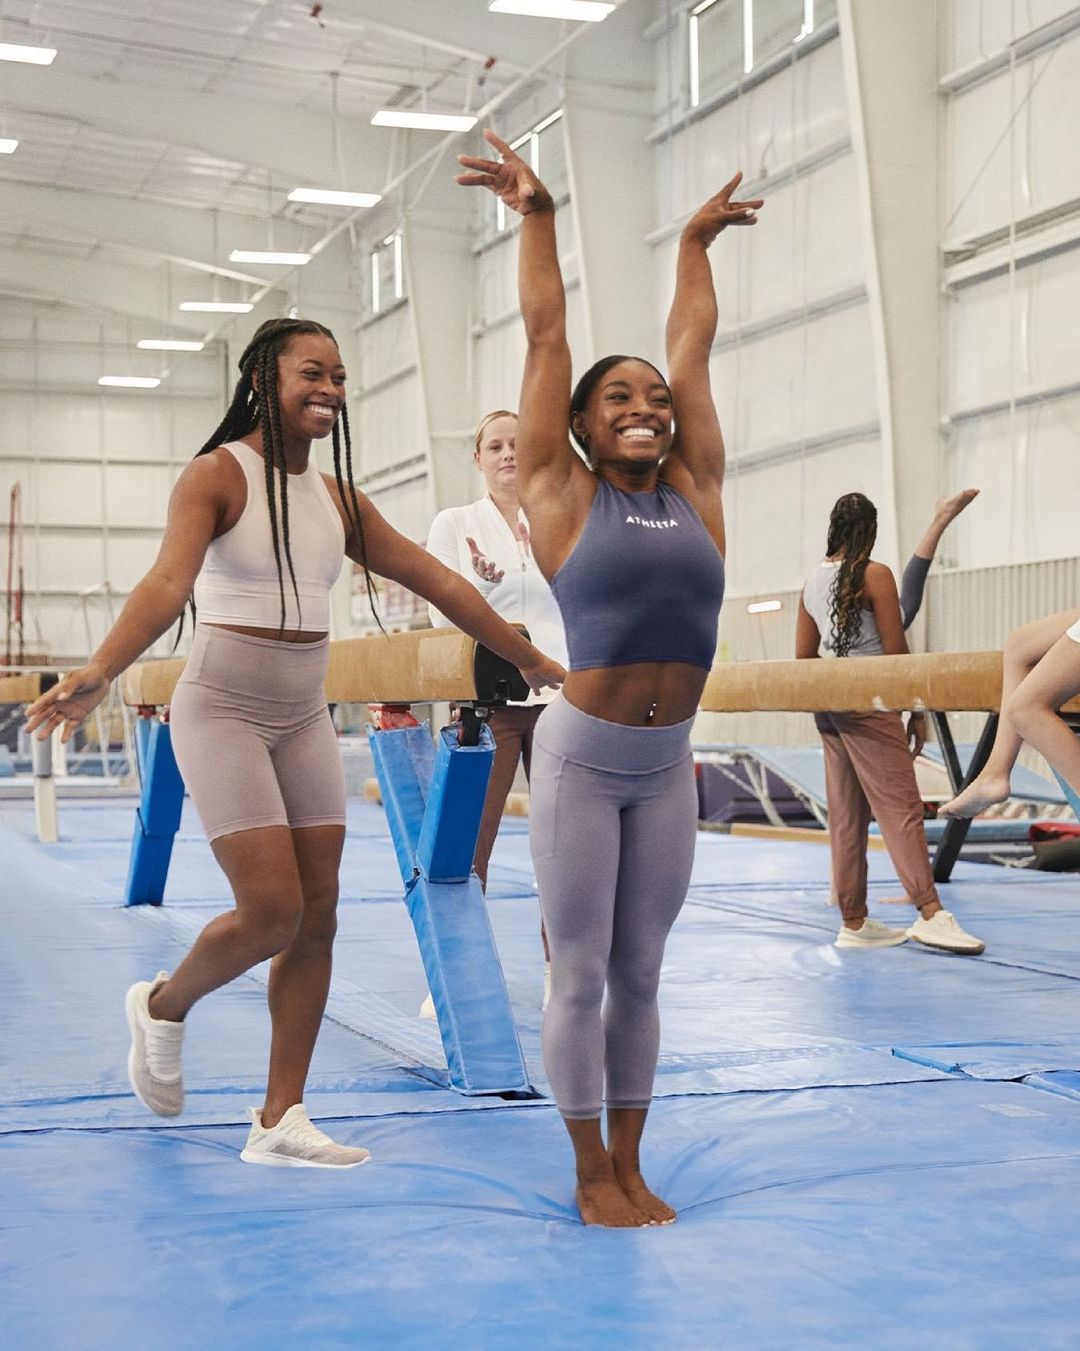 Biles, wearing a slate blue crop top and lighter blue leggings, poses in the gym like she is sticking her landing, with one girl smiling and walking behind her and several gymnasts training in the background.